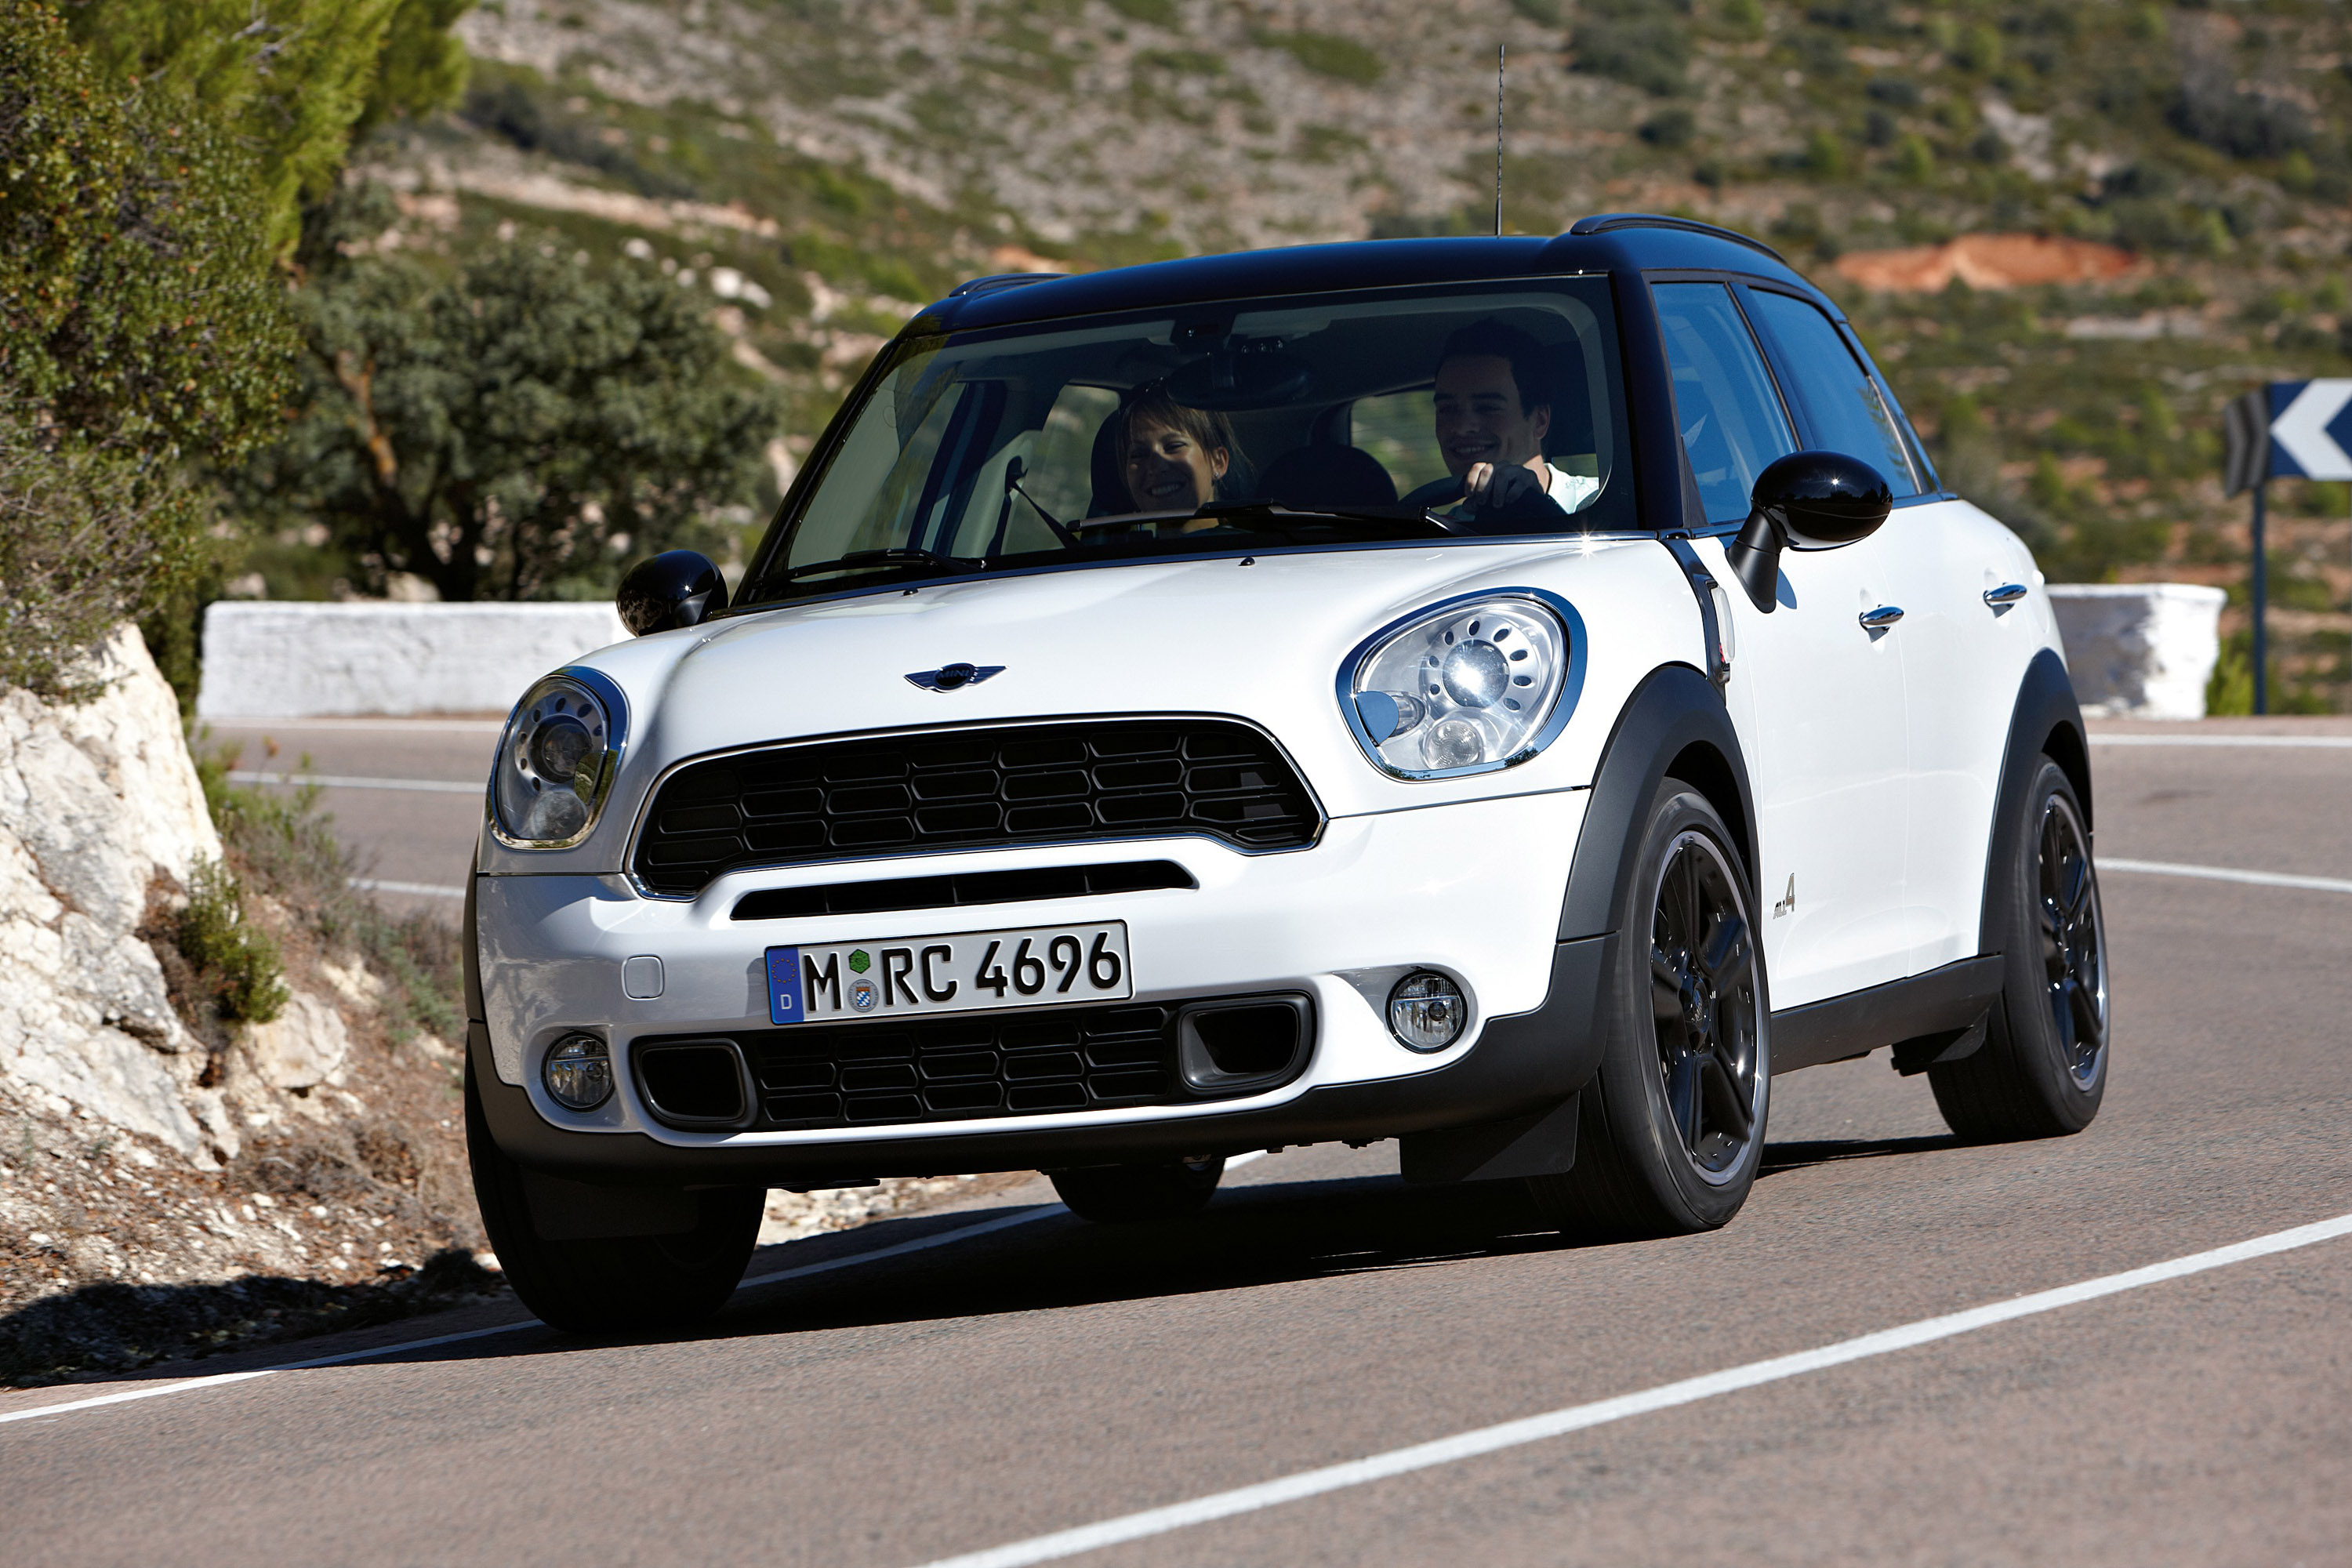 mini countryman 39 s price details revealed. Black Bedroom Furniture Sets. Home Design Ideas